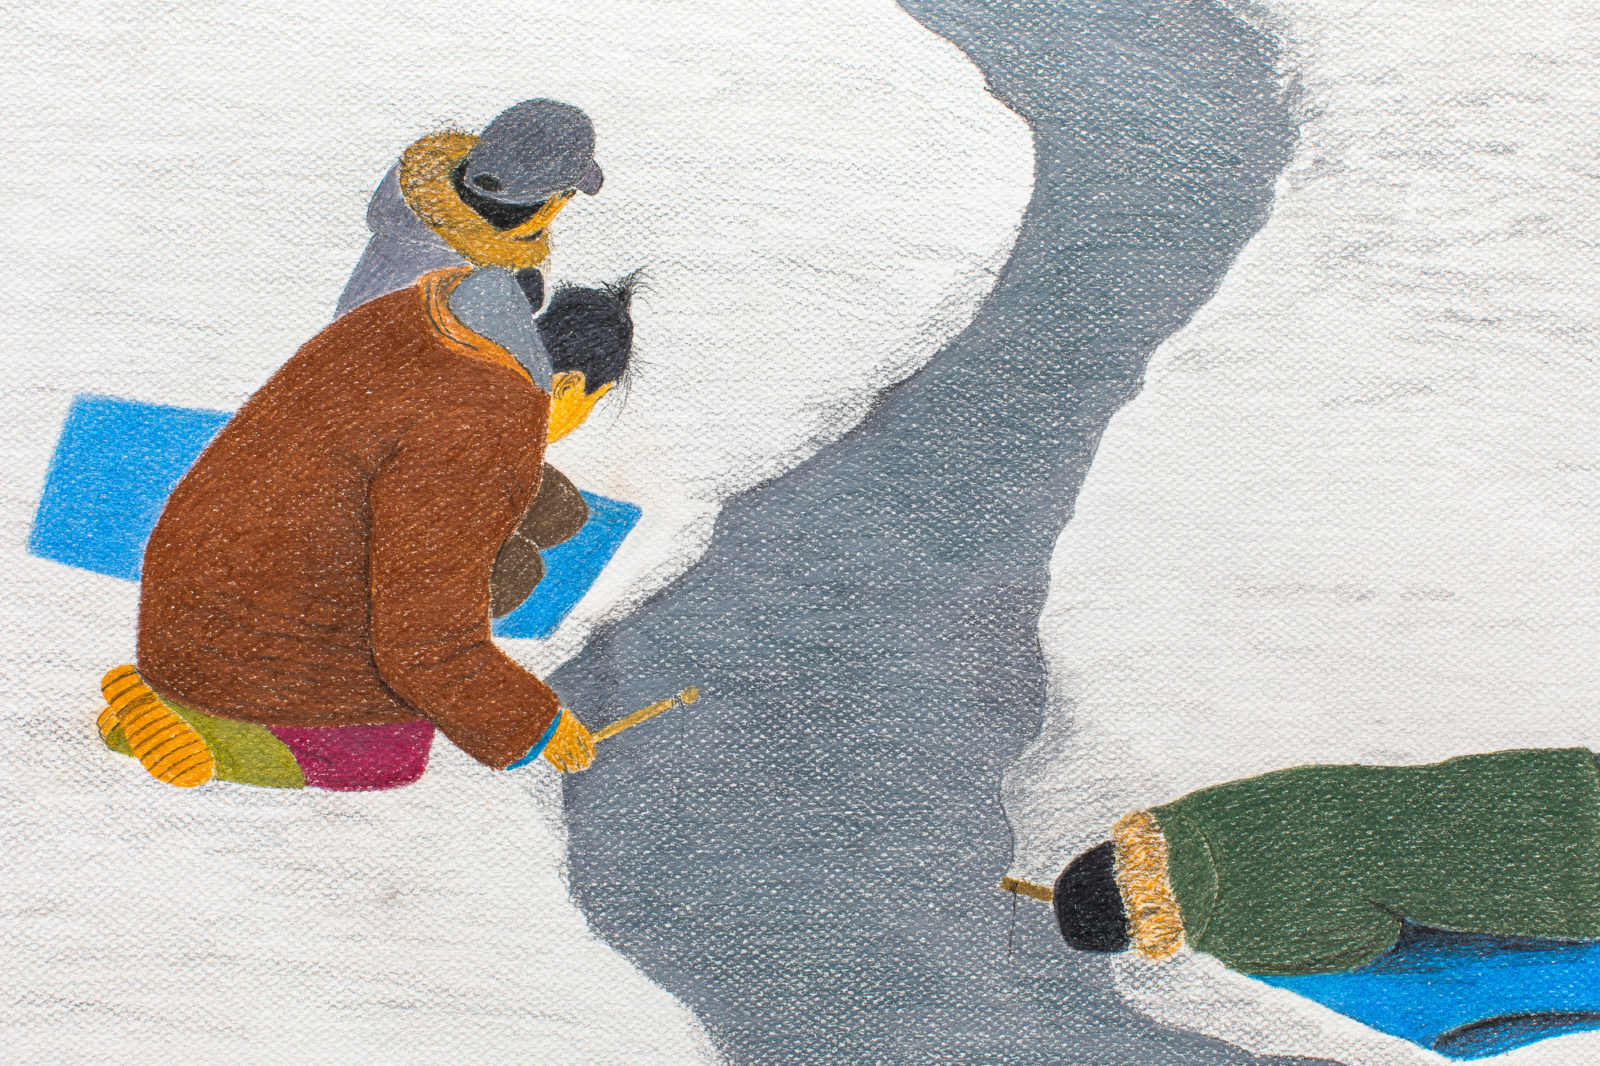 Itee Pootoogook - Jigging Through The Crack In The Fish Lake